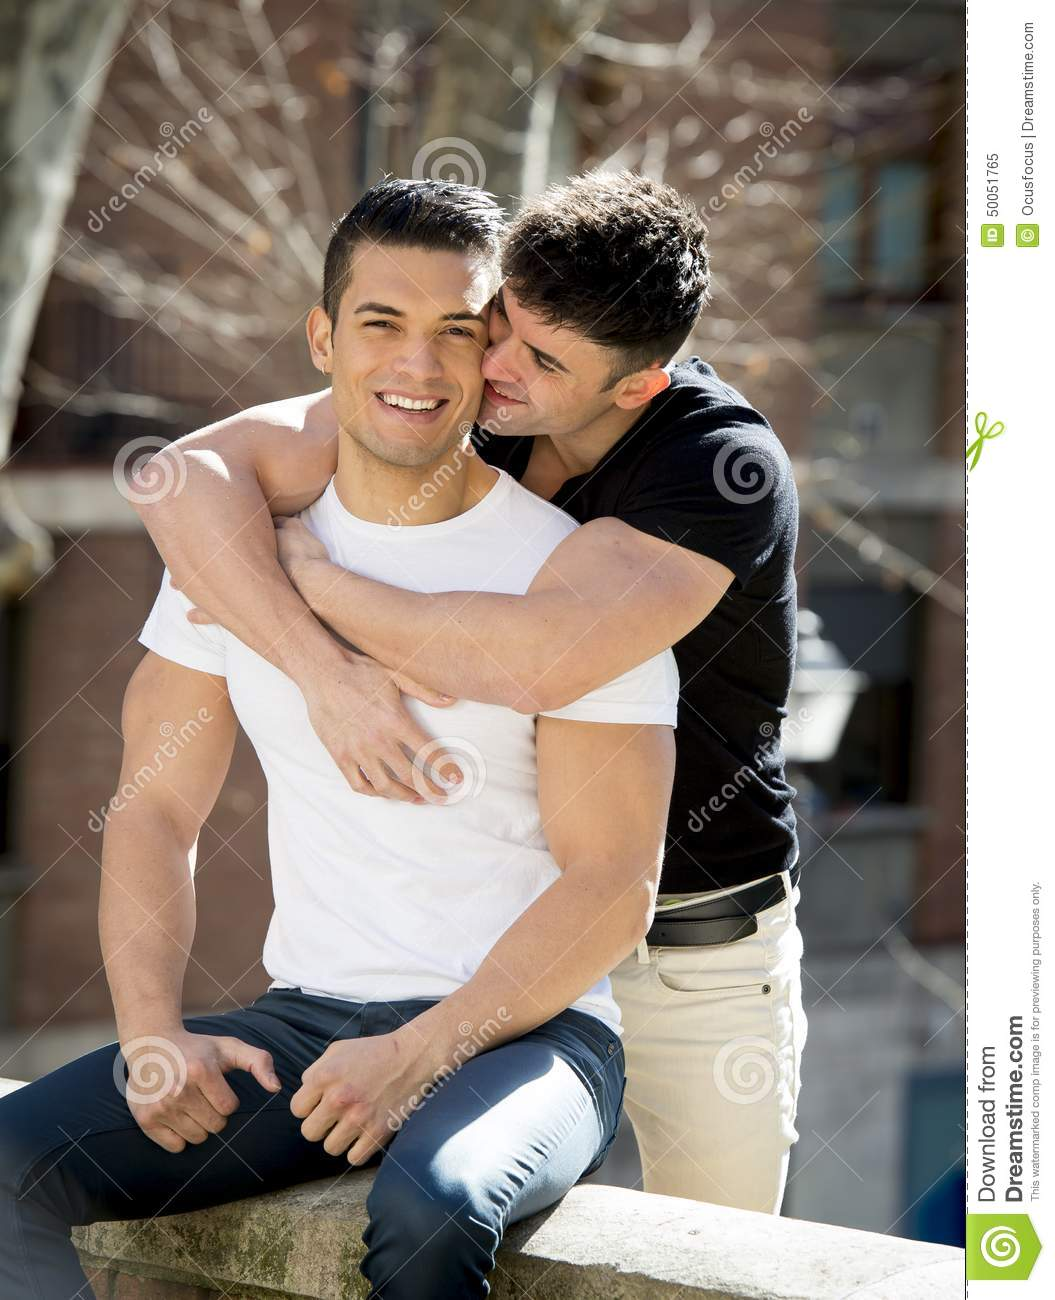 from Briar free gay kissing pictures